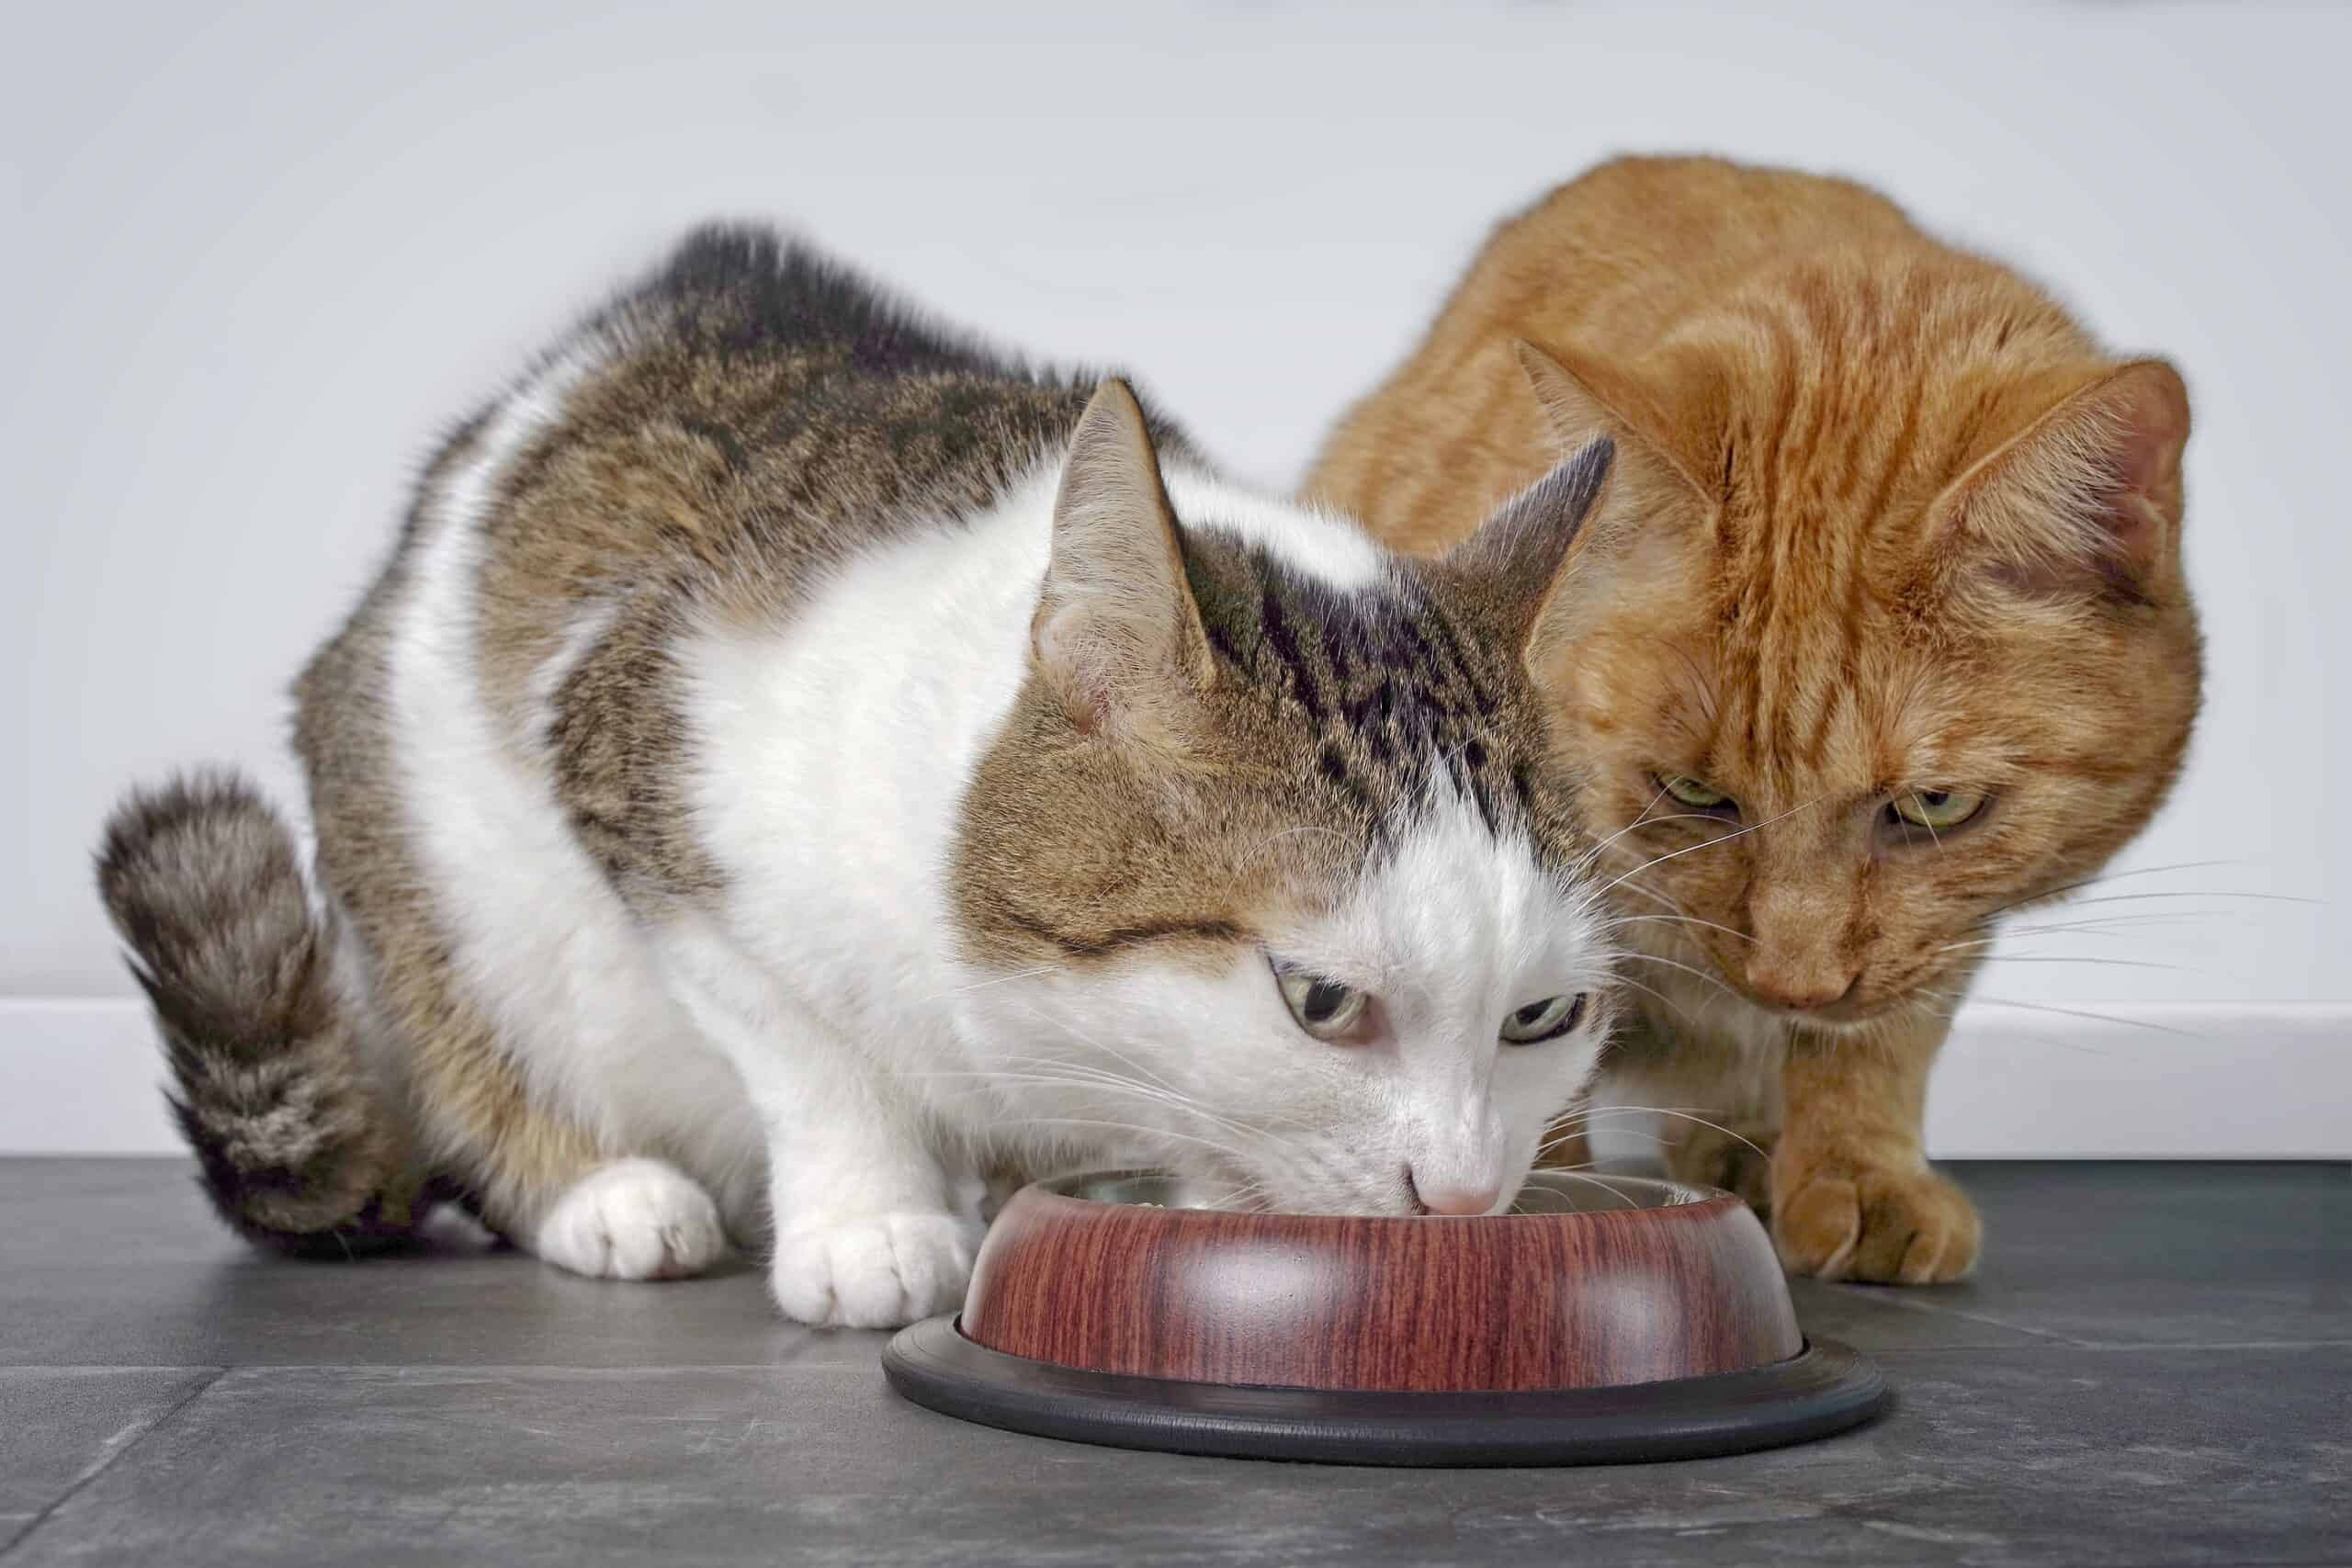 why are cats always eating?